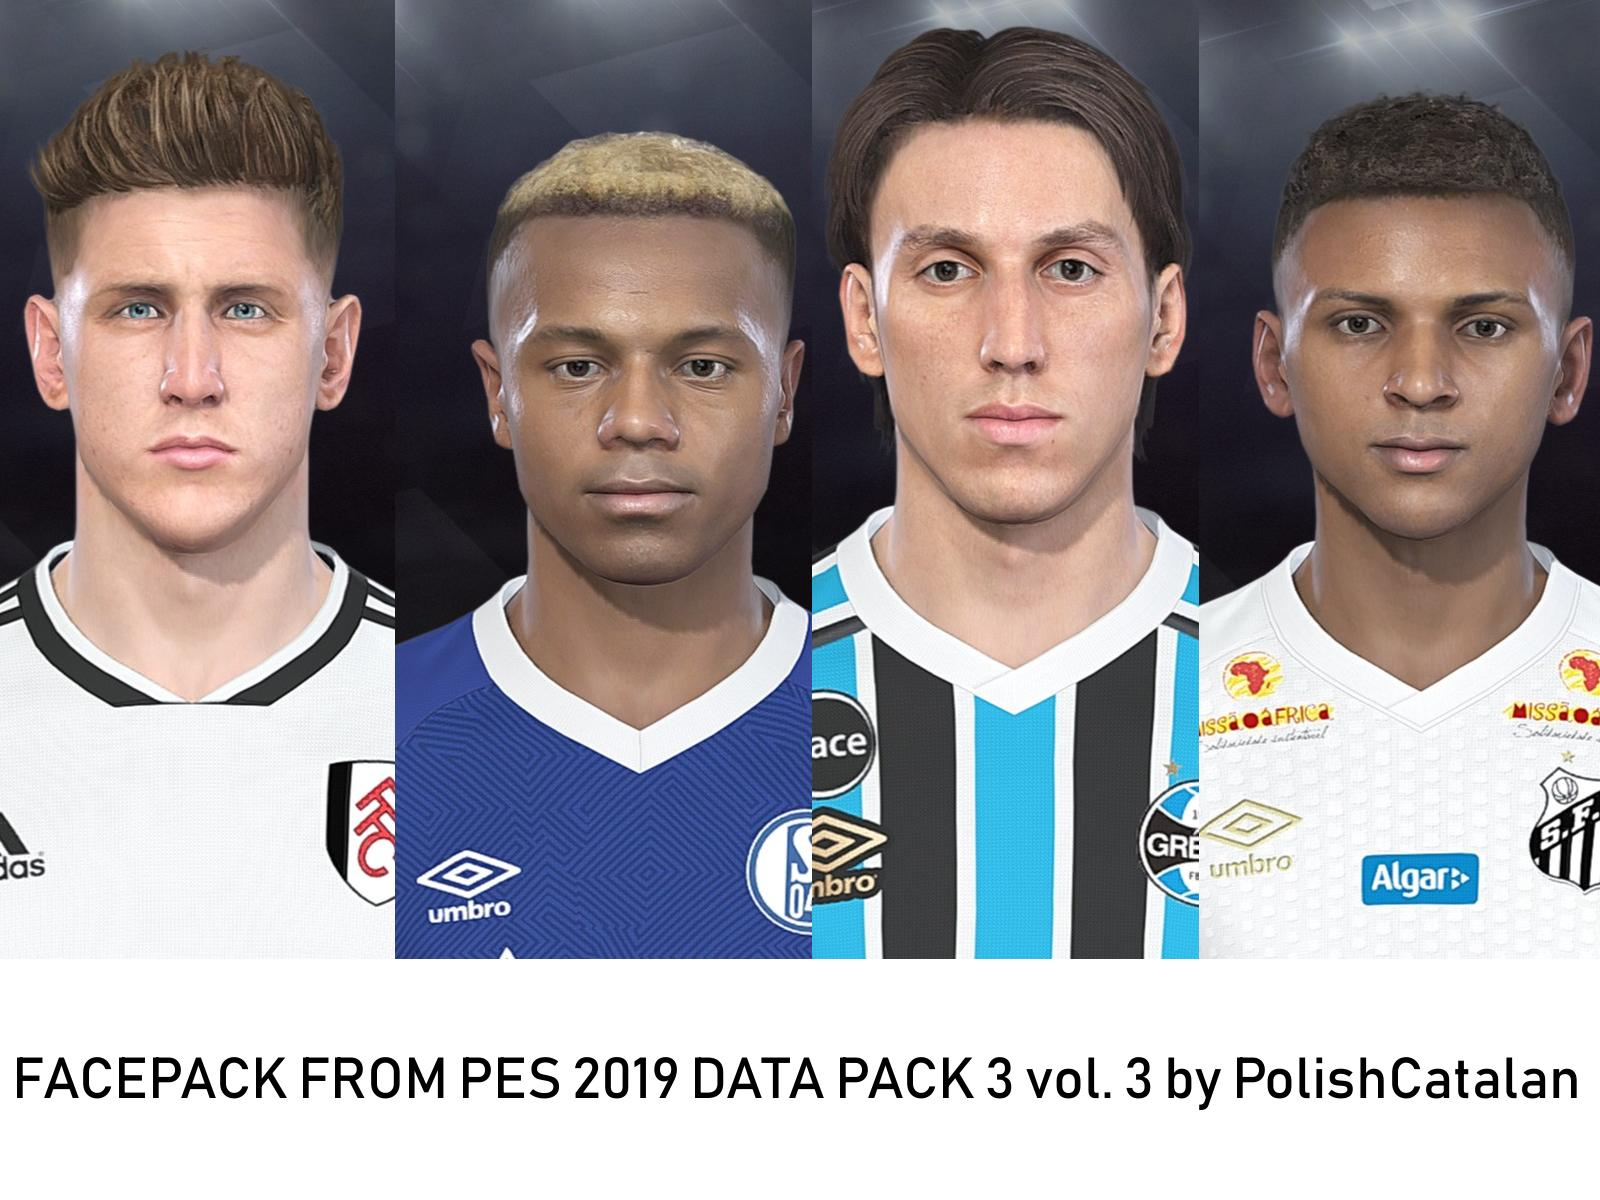 Pes 19 patch for pes 18 download | PES 2019 Patch  2019-04-29